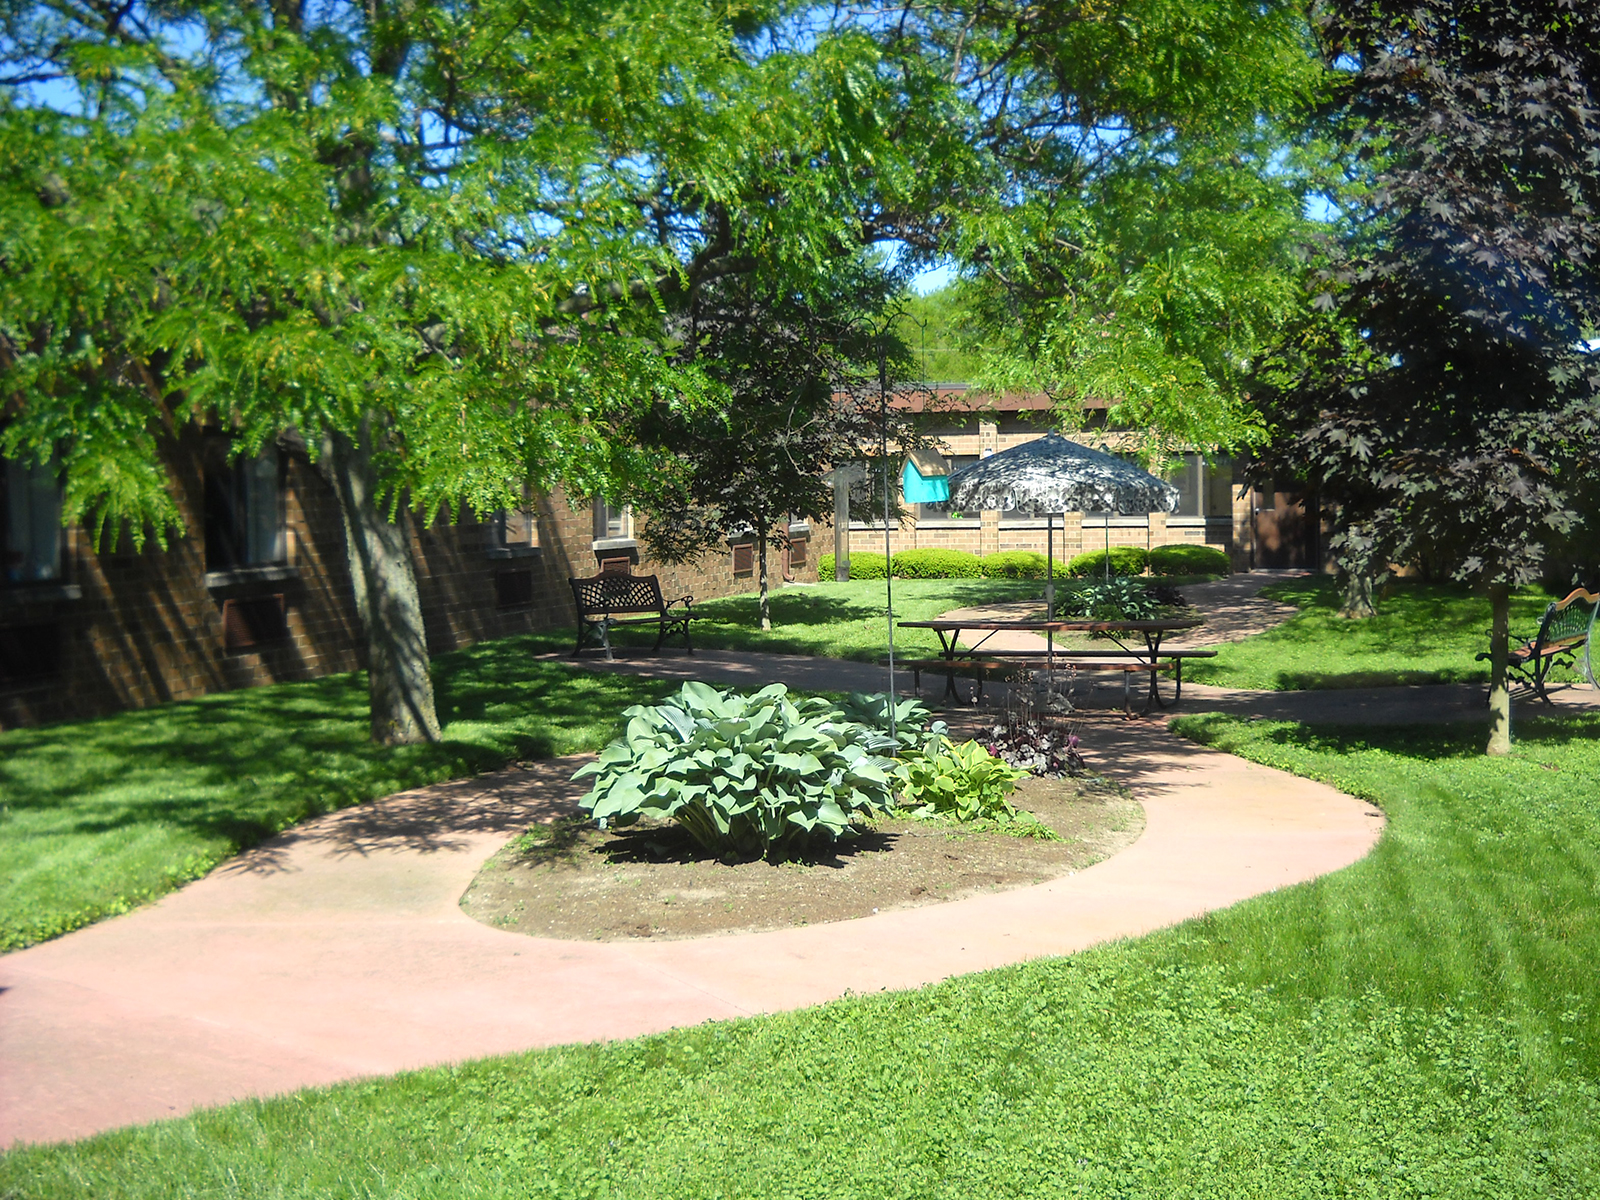 FarmingtonHillsInn_Courtyard.jpg